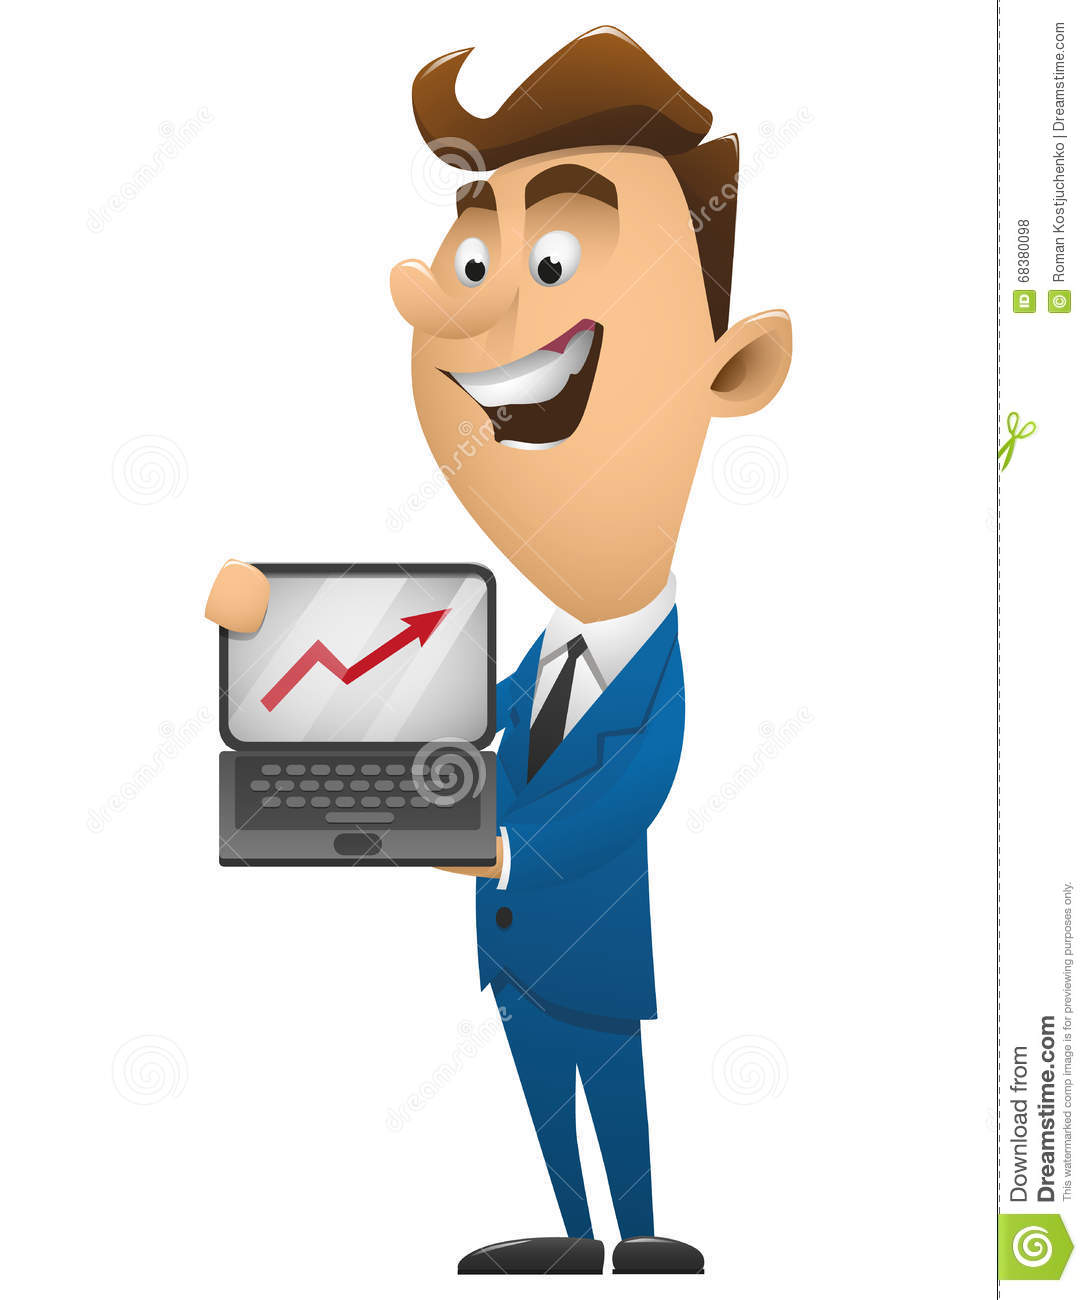 business-man-cartoon-character-vector-illustration-bs-eps-68380098.jpg